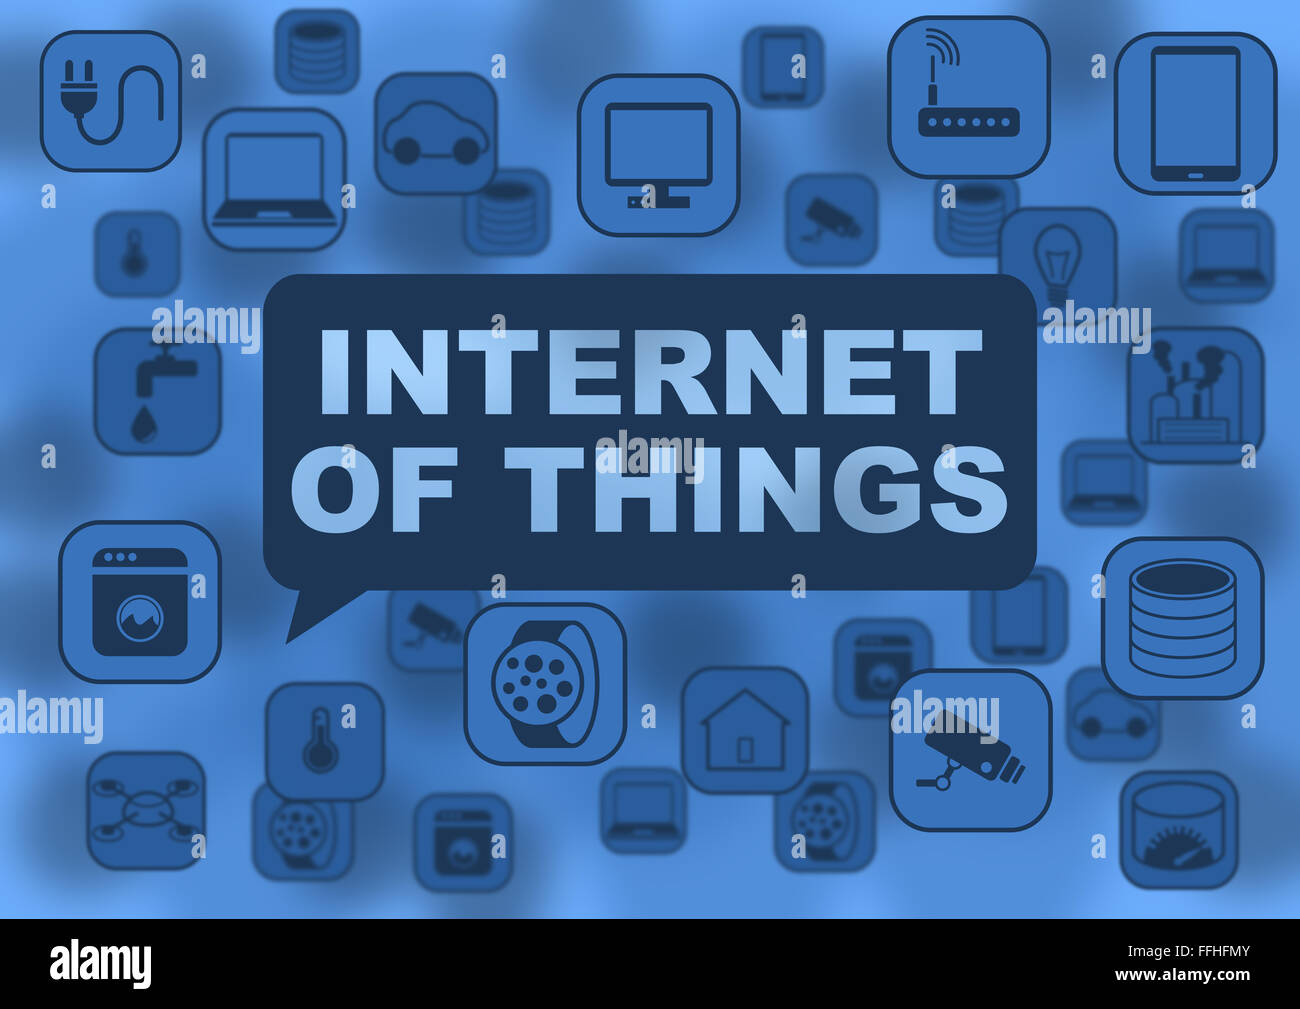 Internet of things illustration with various objects flying around like notebooks, tablets, smart watches, routers, - Stock Image